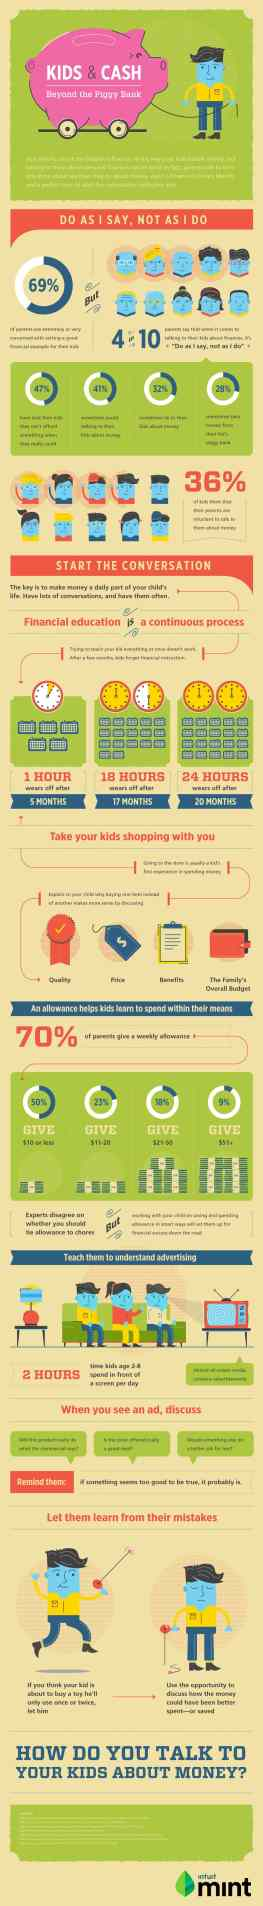 Kids & Cash: Tips for Managing the Piggy Bank [Infographic]